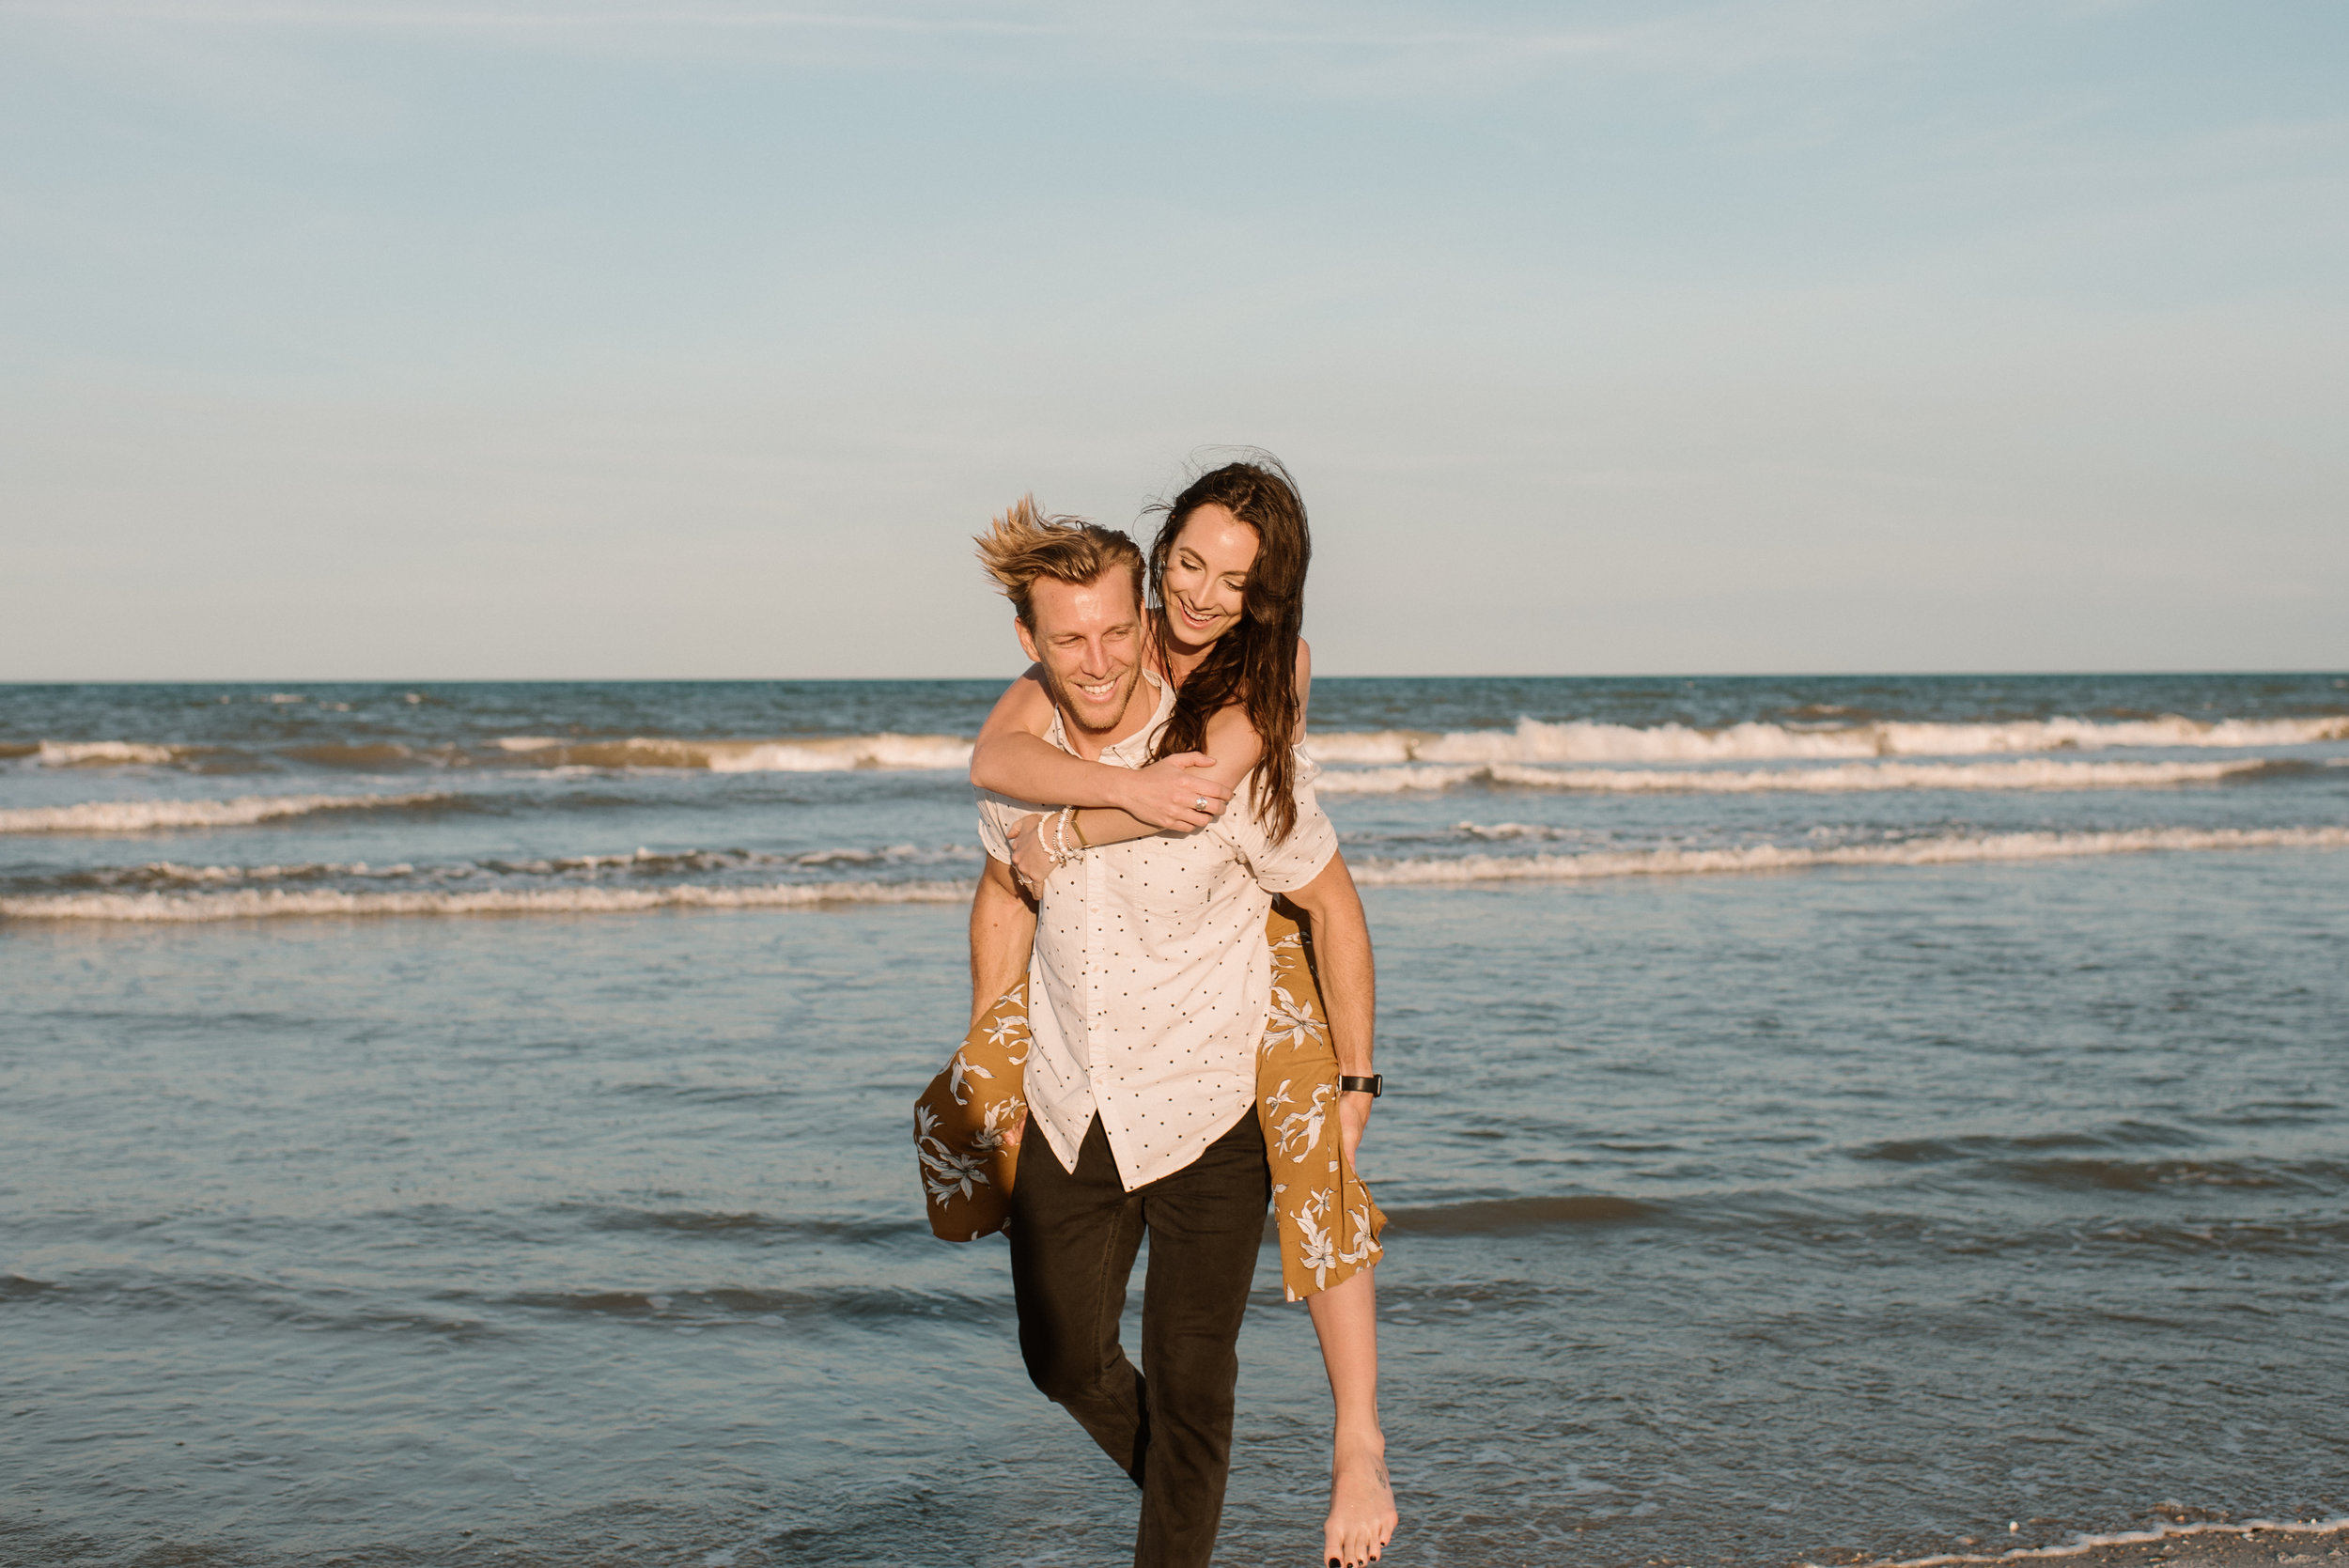 atlantic-beach-engagement-photos-heather-and-cody-58.jpg